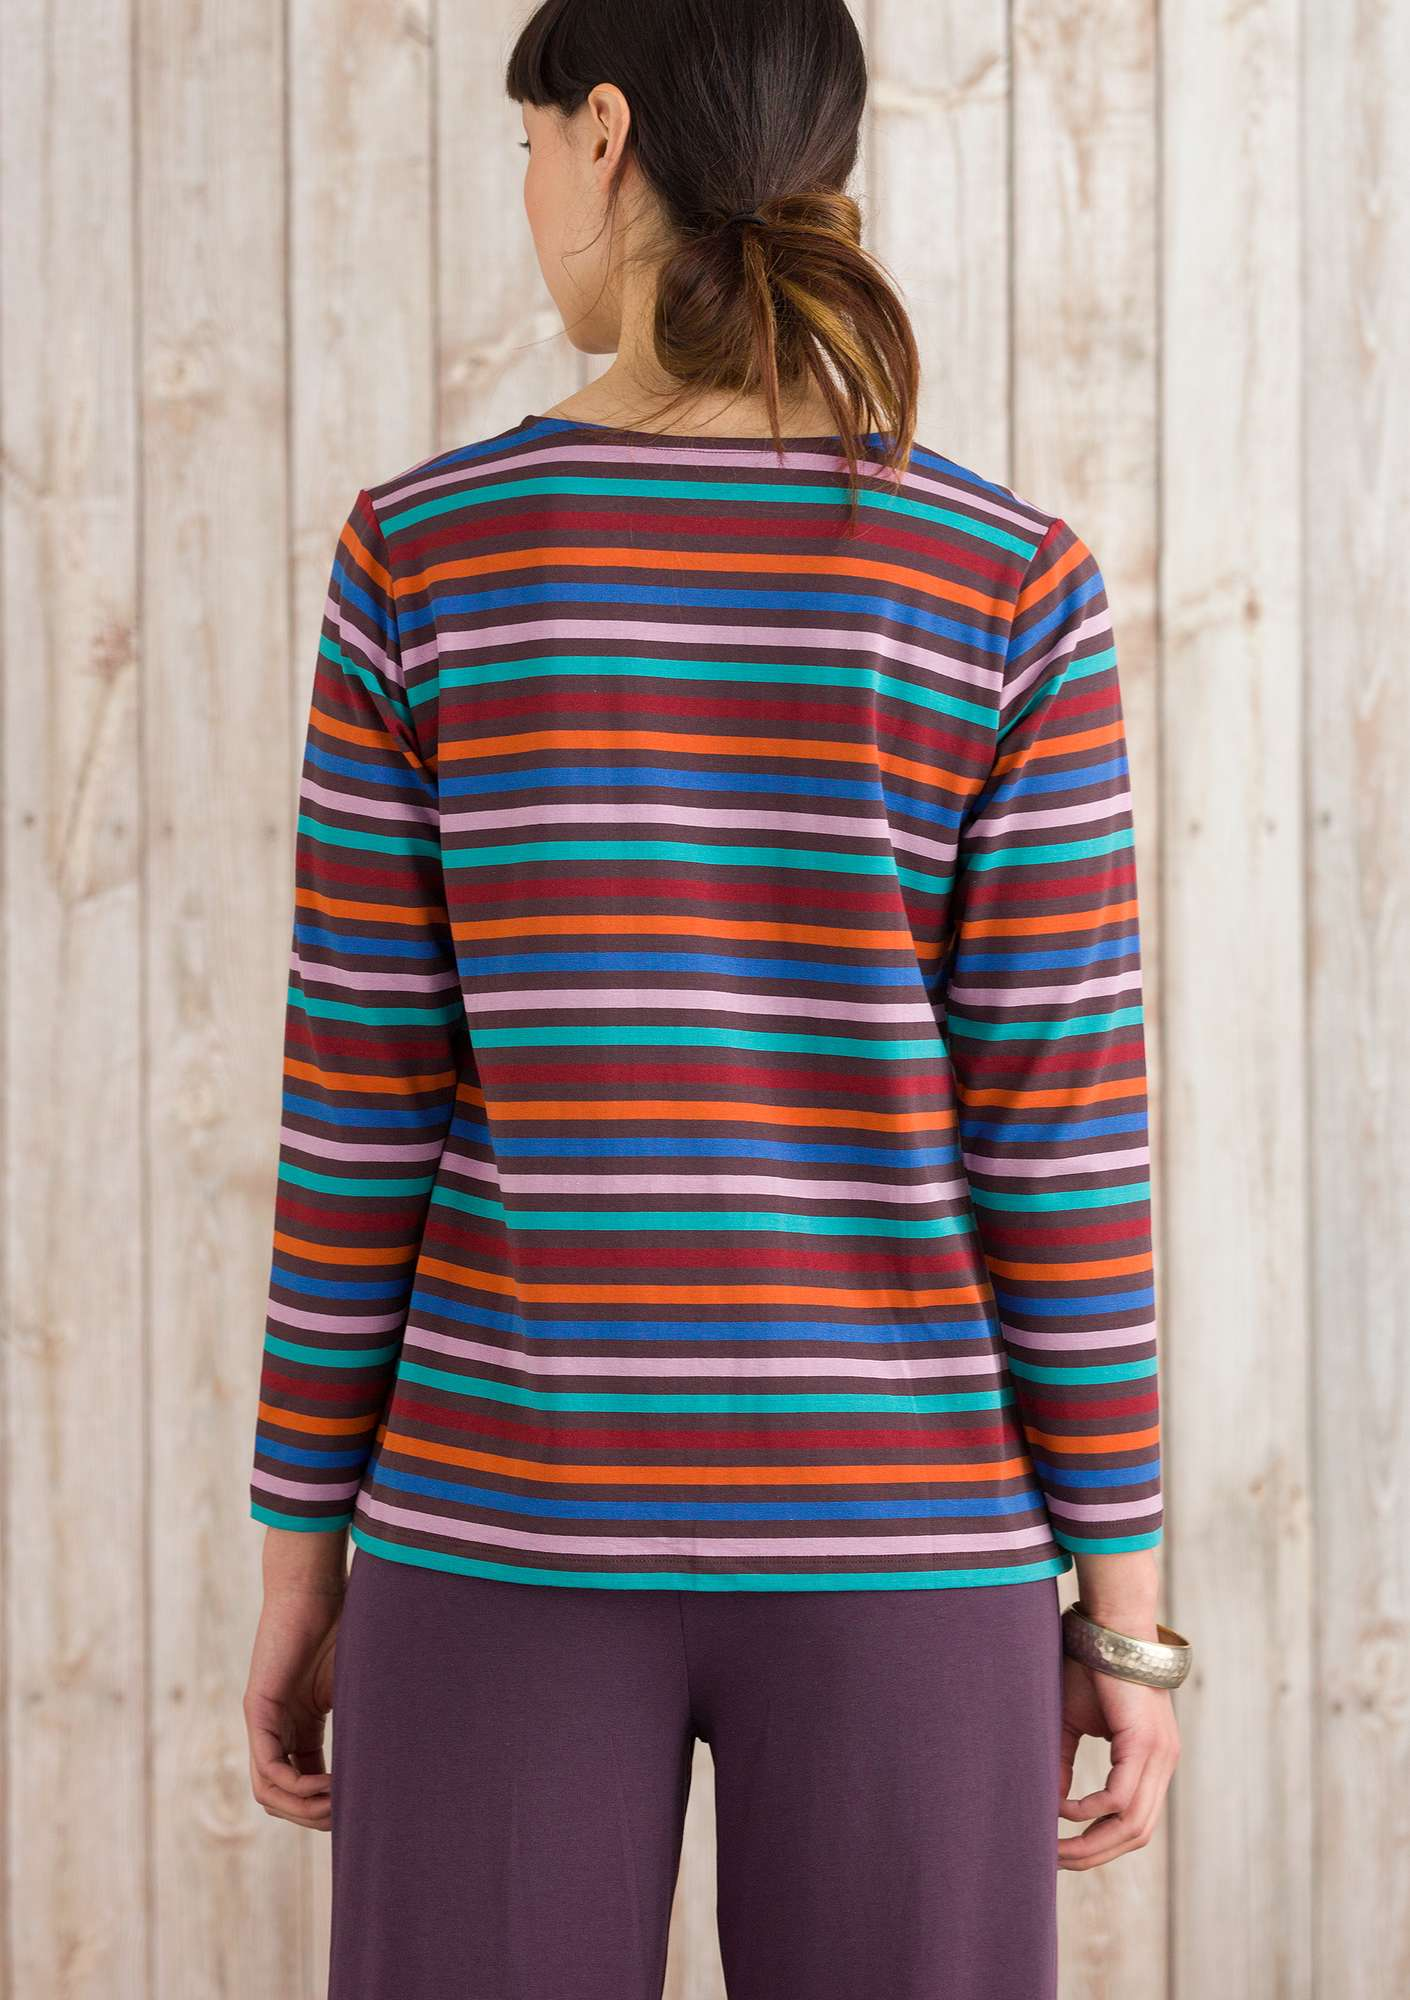 Long-sleeve top in modal/cotton/elastane multicoloured